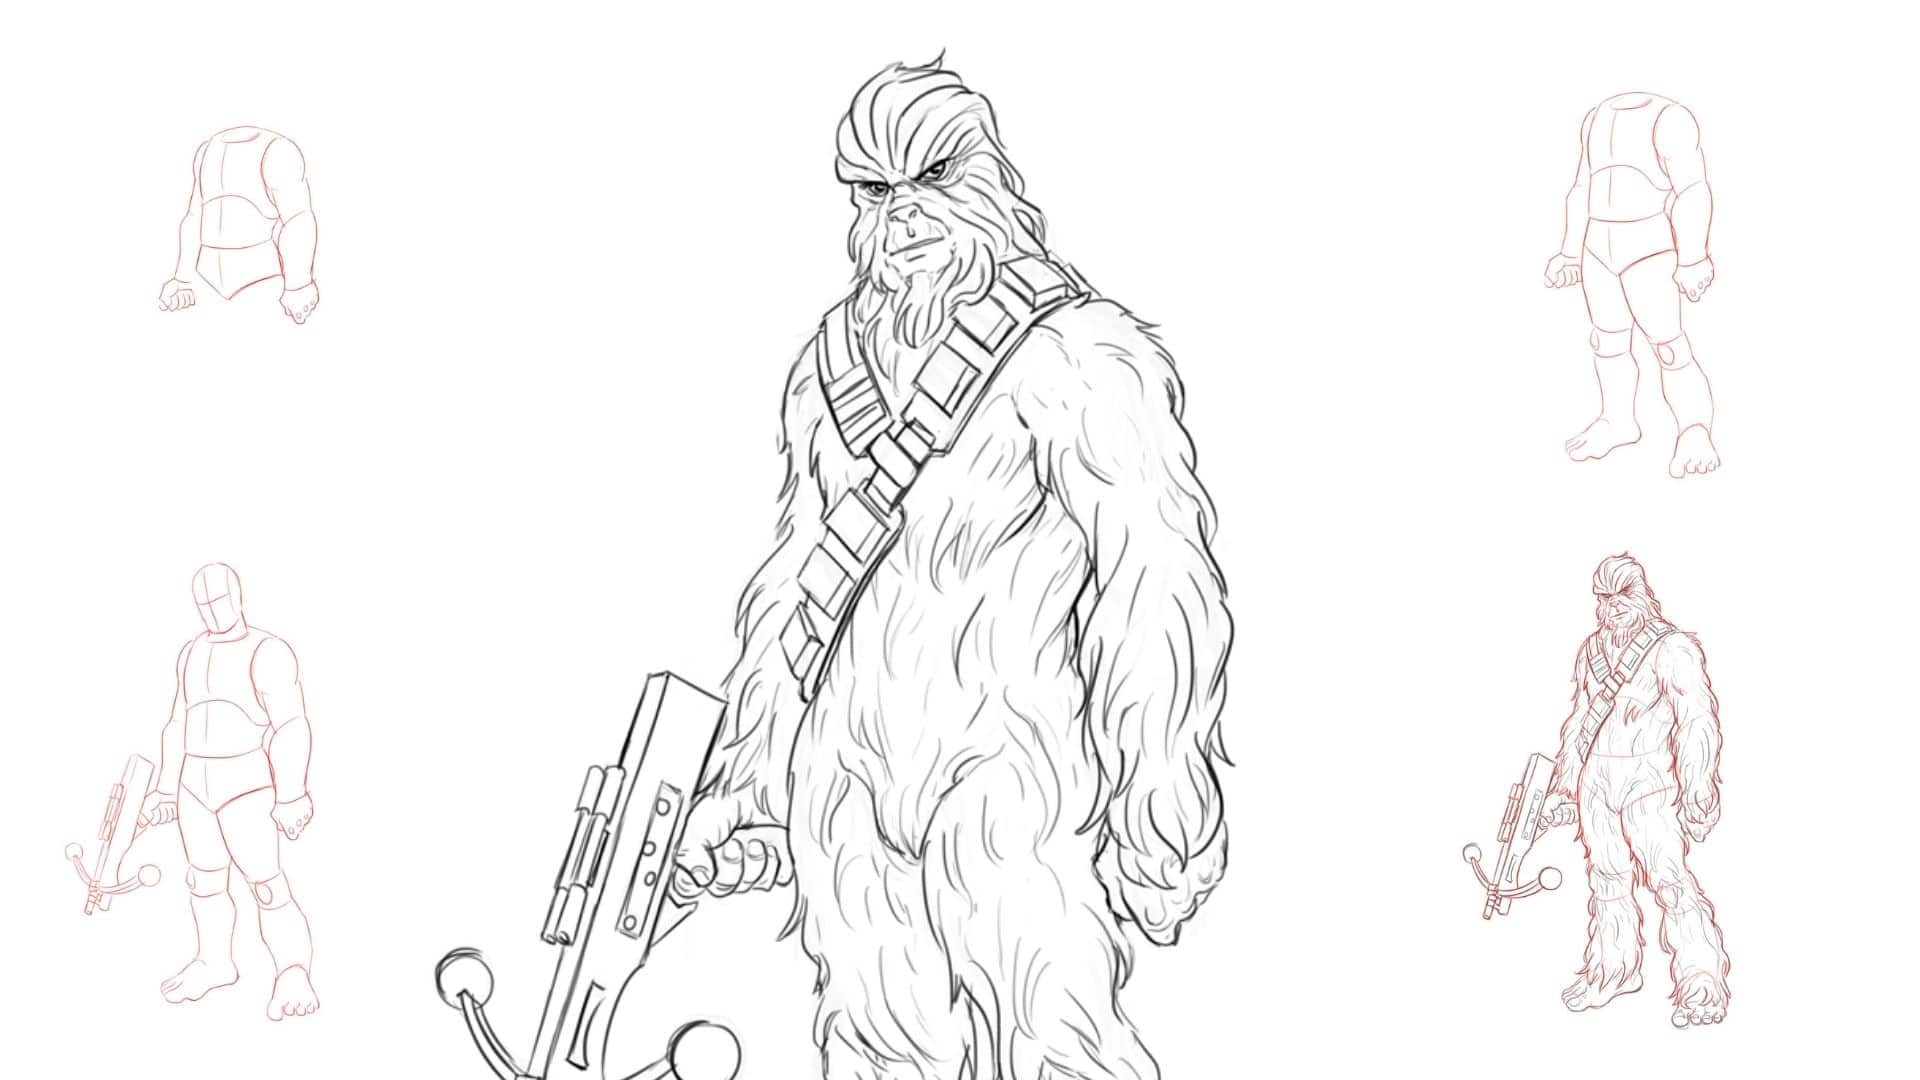 Learn To Draw Chewbacca from Star Wars in 8 Easy Steps